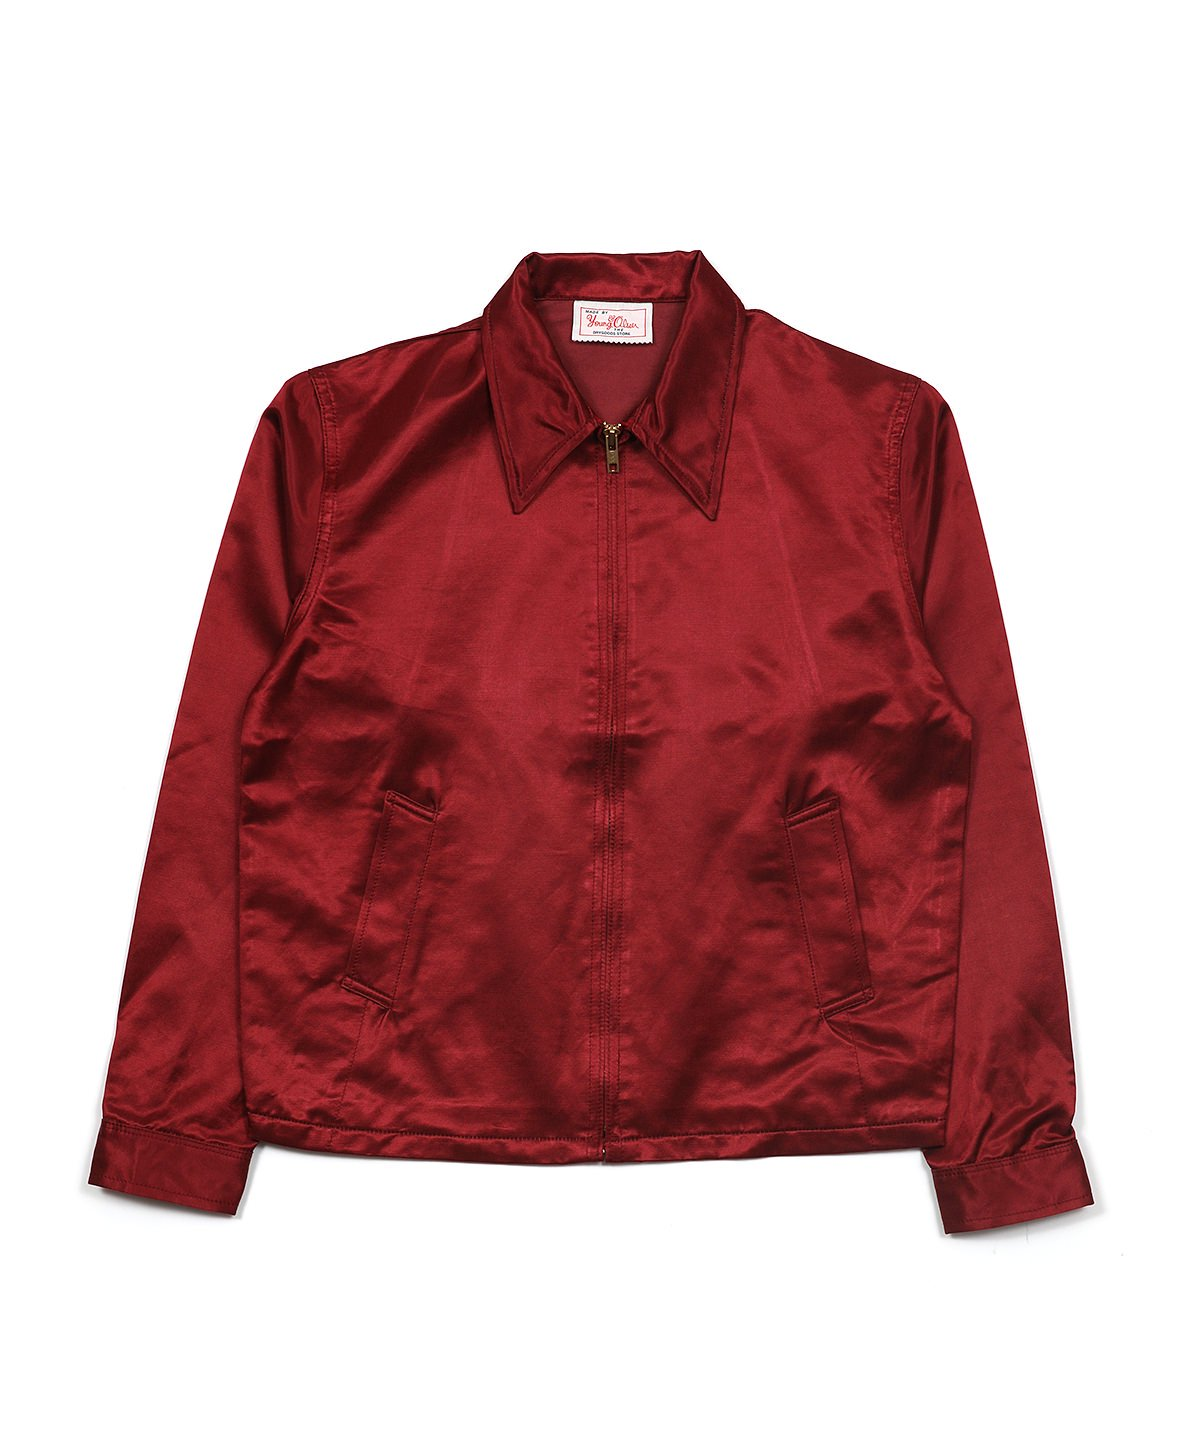 SATIN SWING JACKET